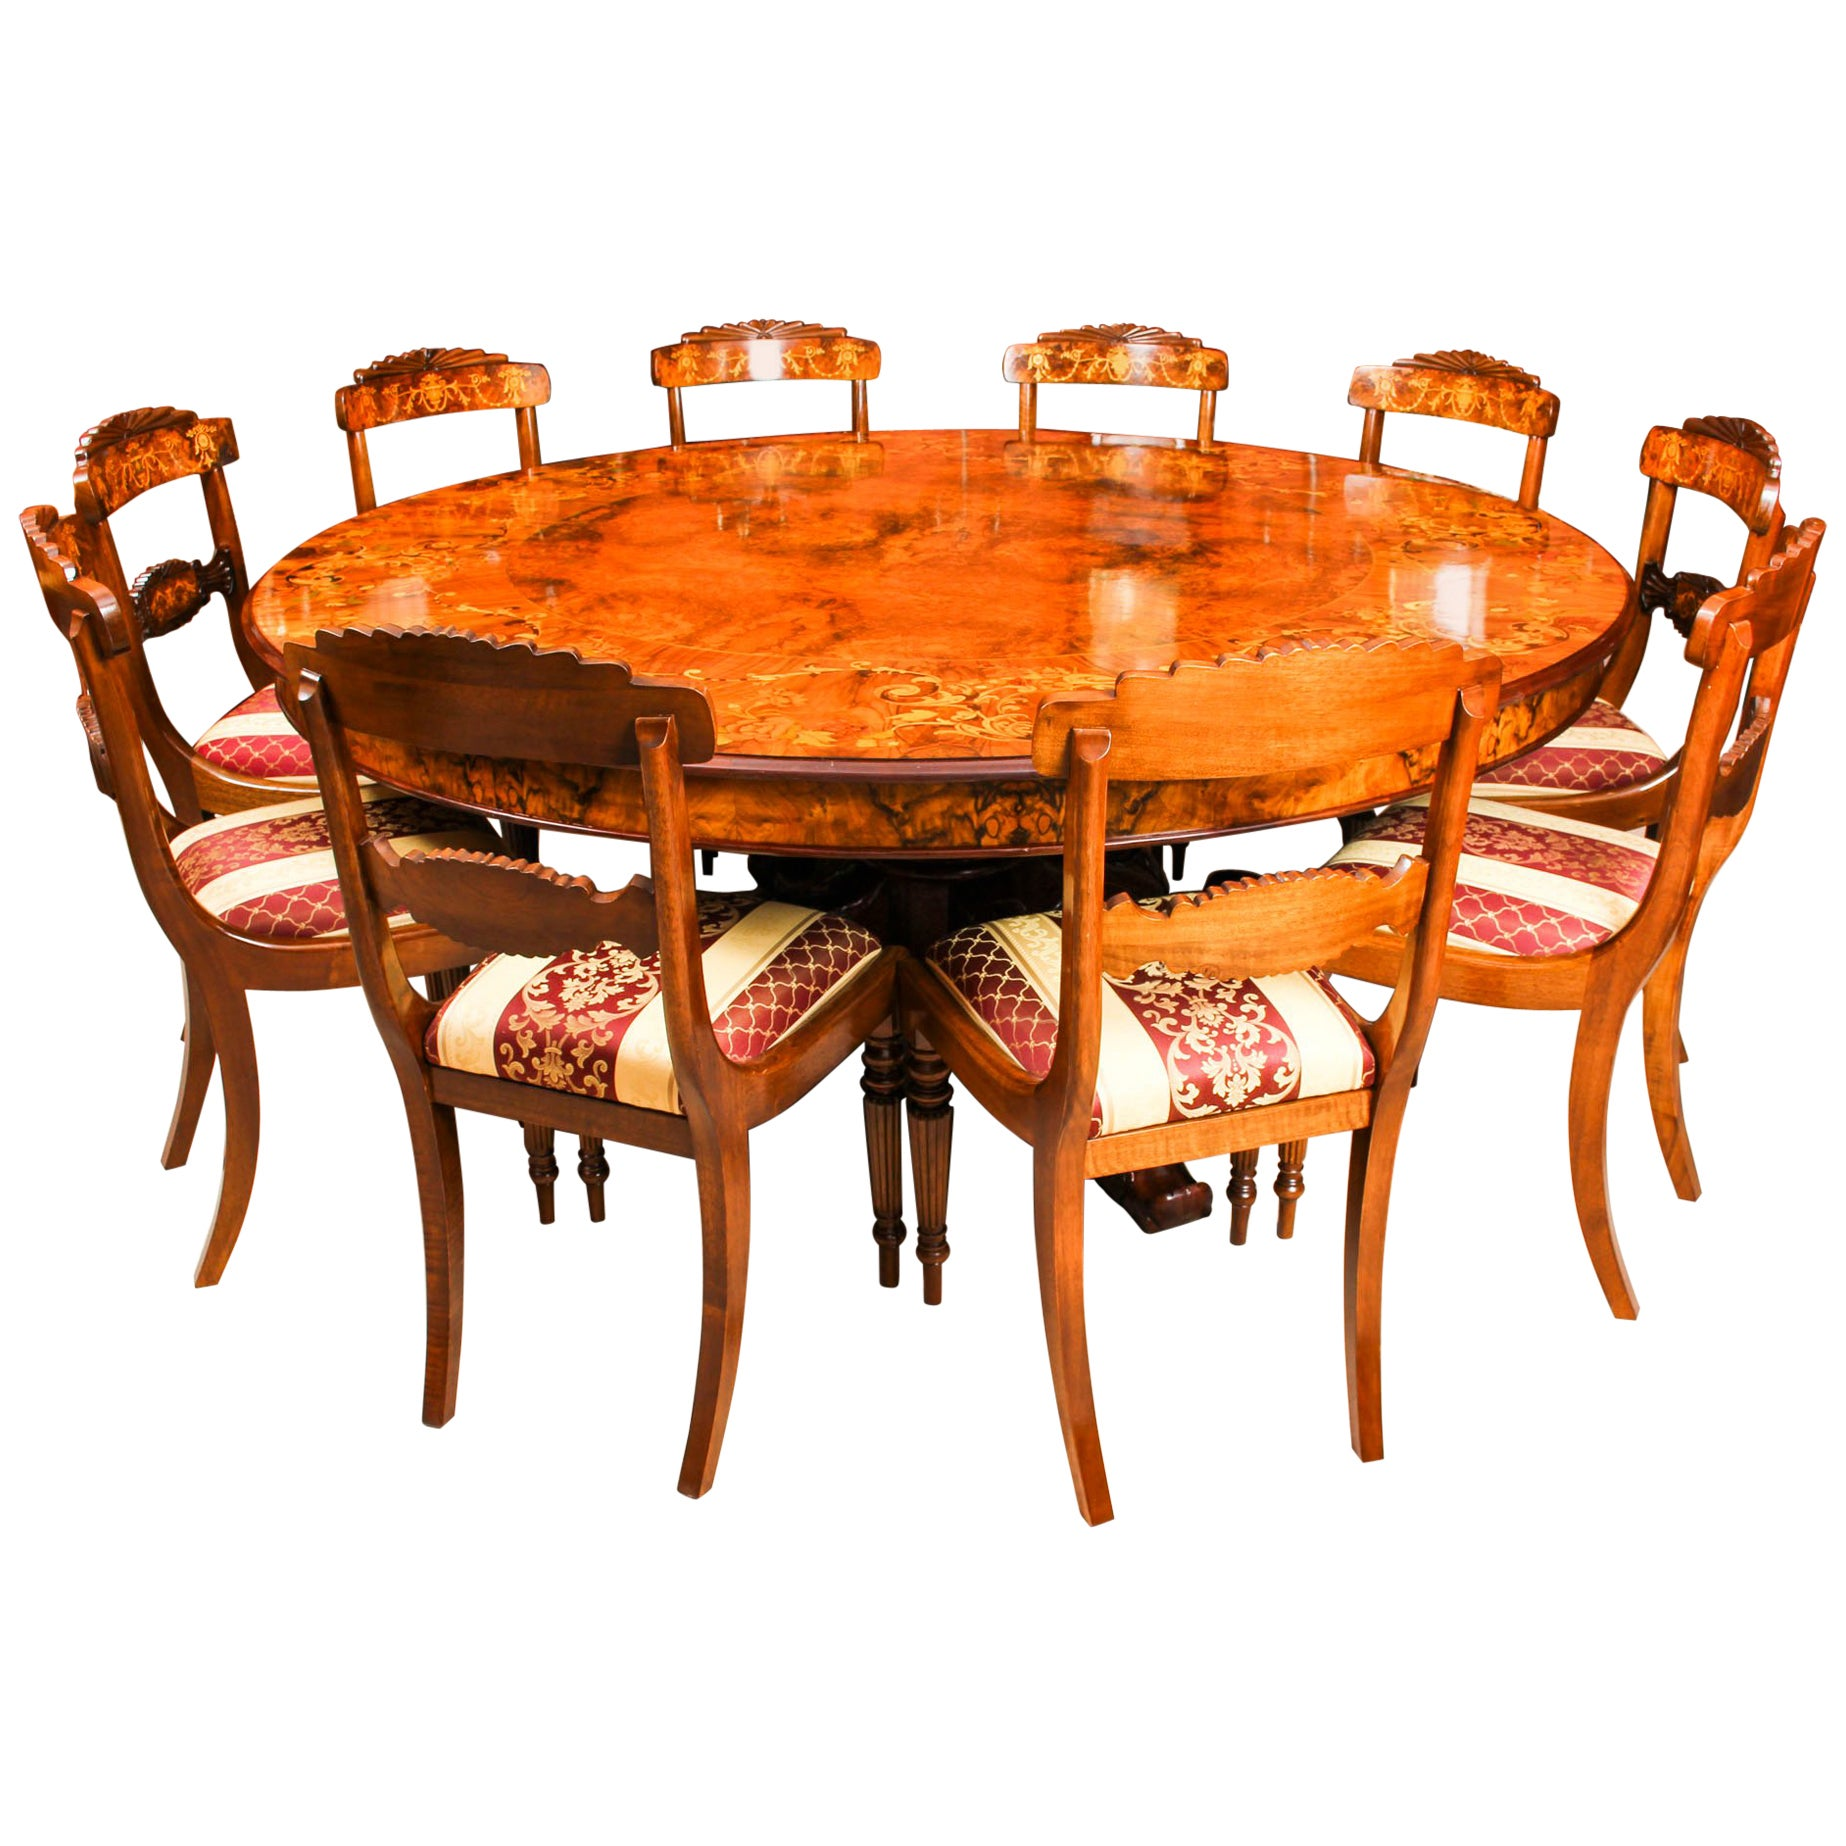 Large Dining Tables To Seat 10 Vintage Round Marquetry Dining Table 10 Chairs